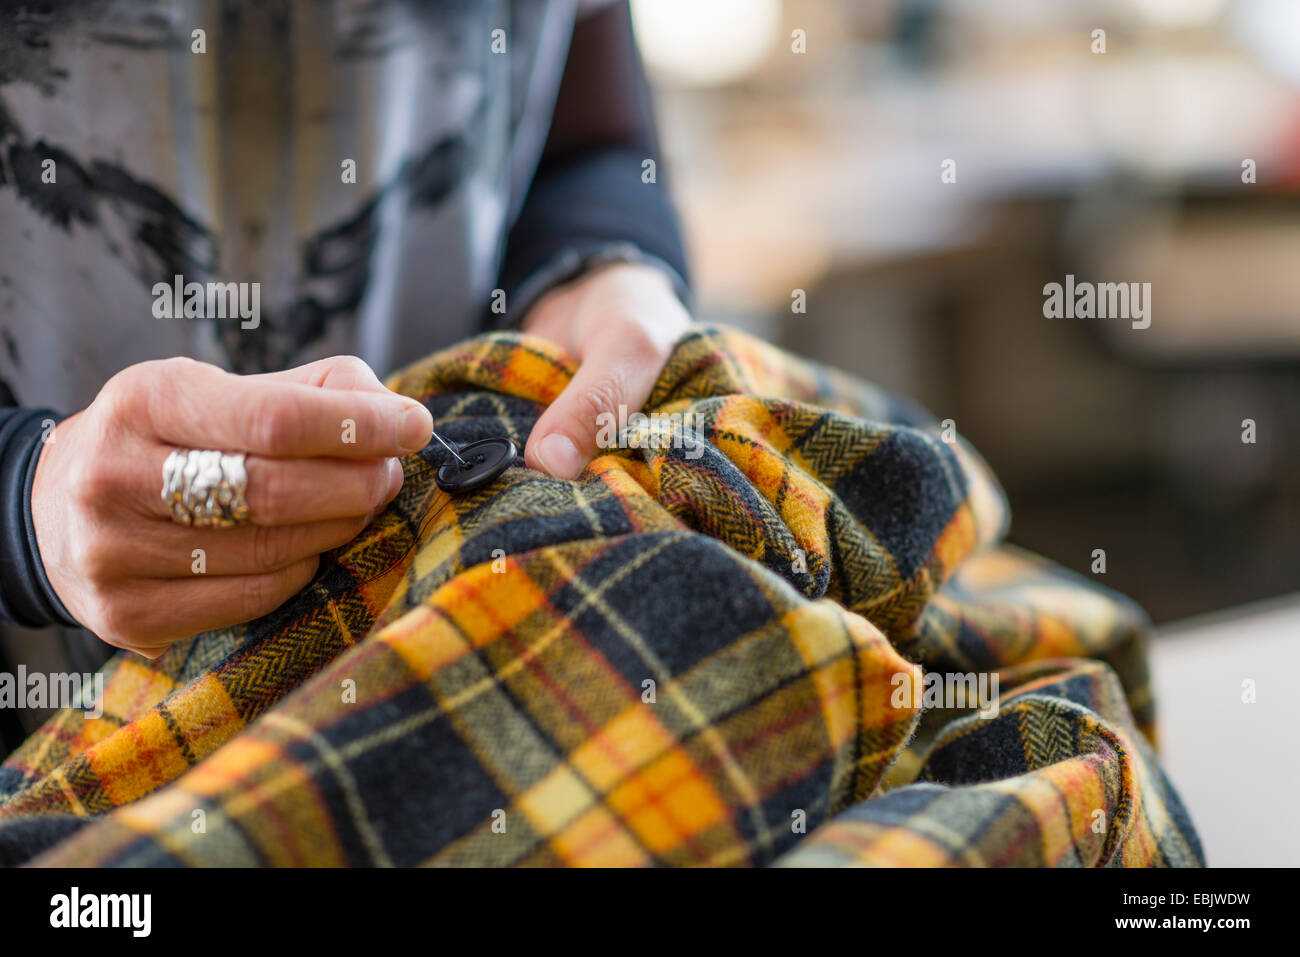 Close up seamstress hand sewing button onto tartan jacket in workshop - Stock Image